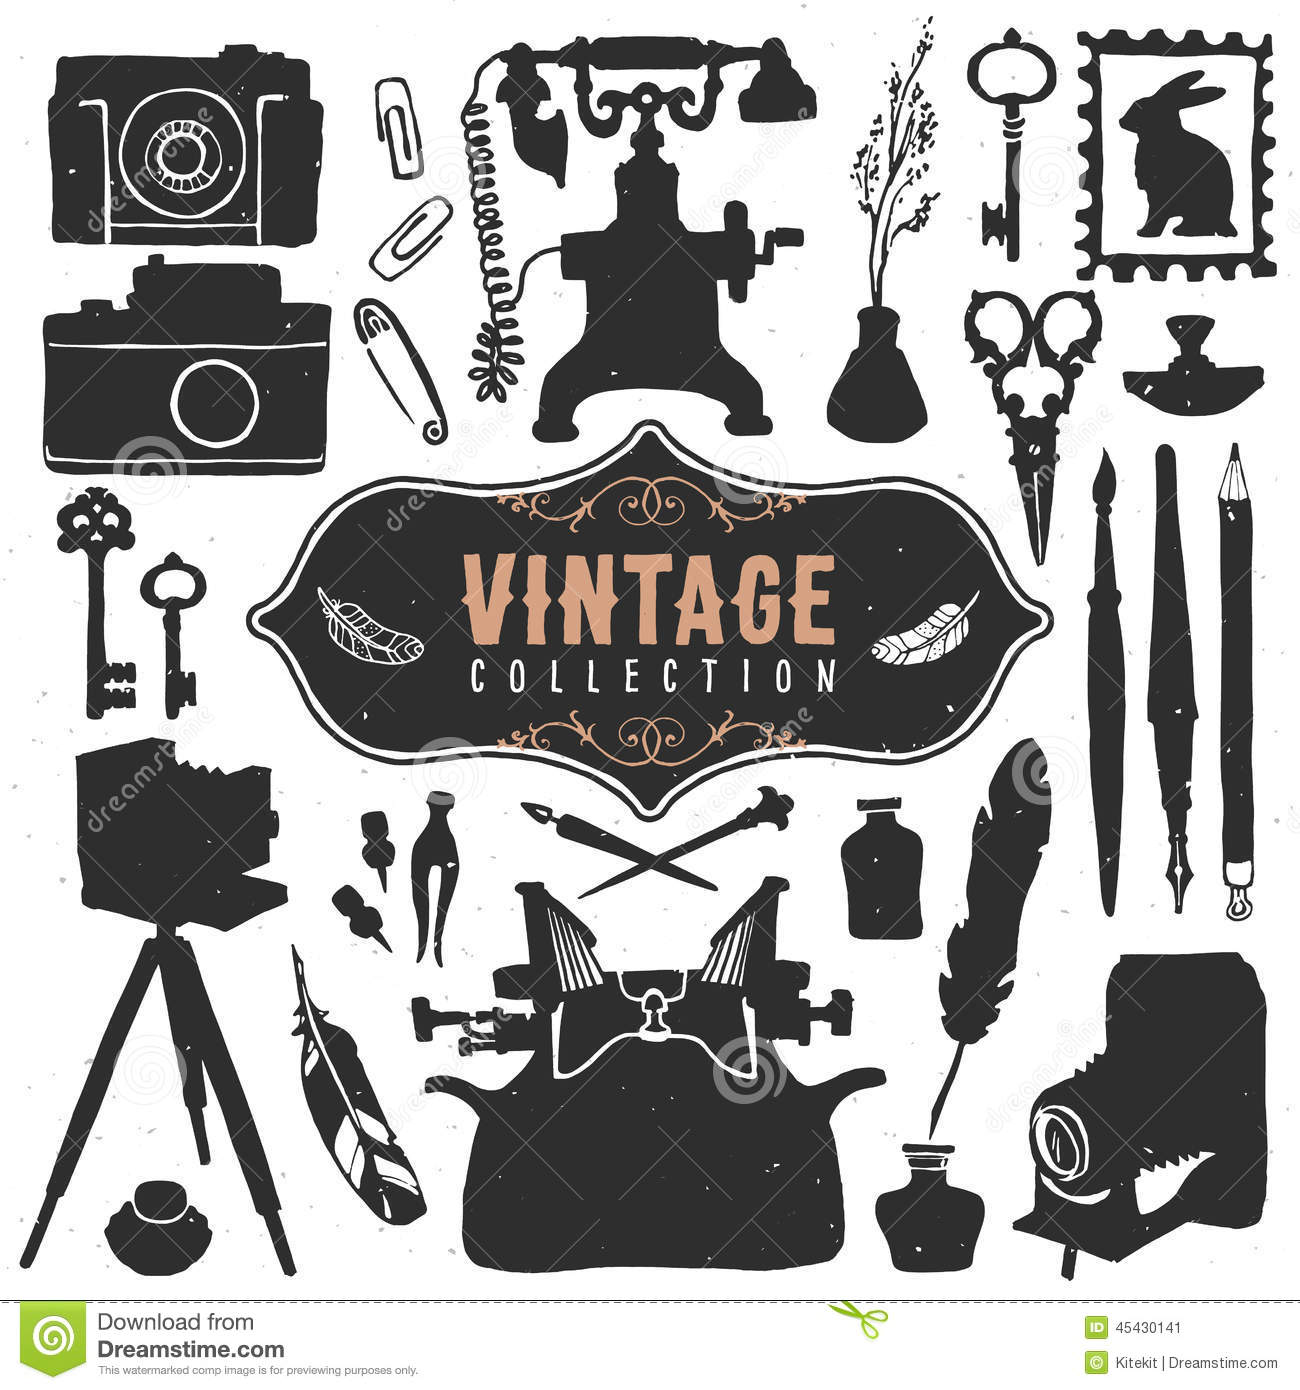 Classic Retro Illustration: Vintage Retro Old Things Collection. Hand Drawn Vector